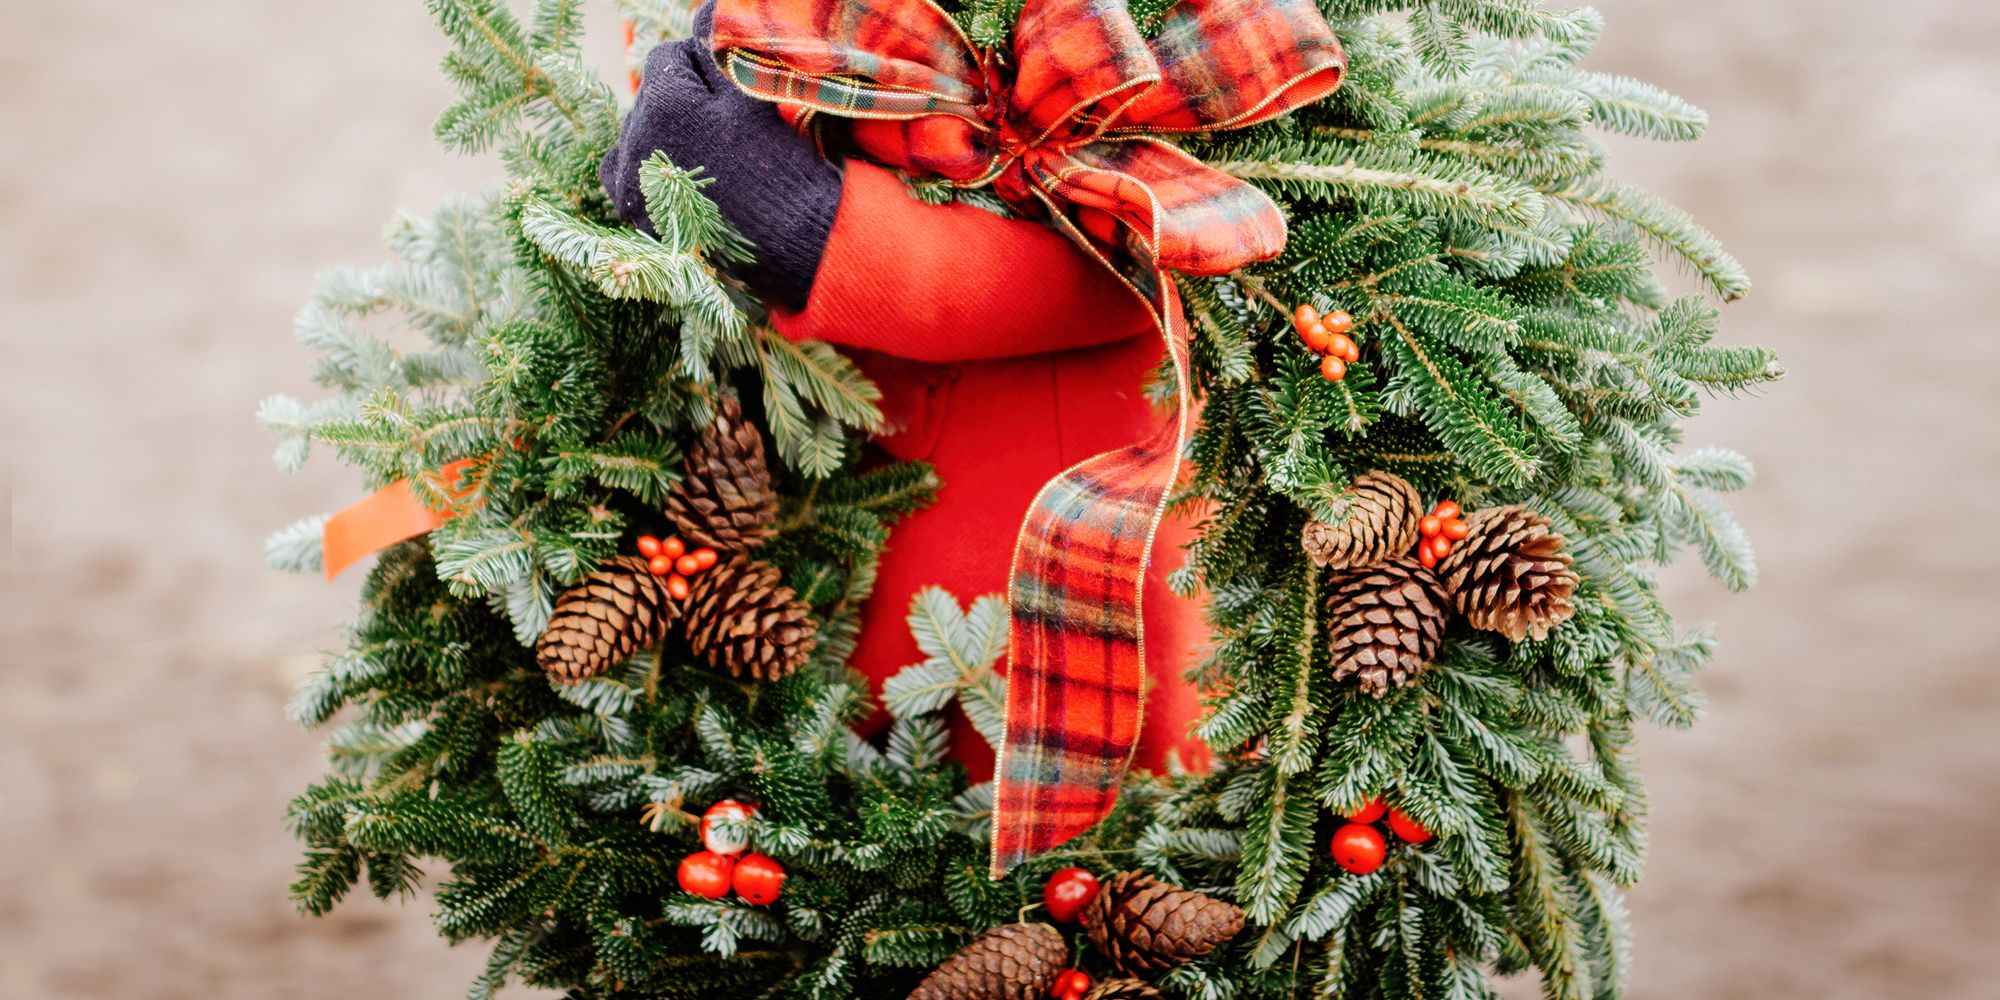 10 Best Christmas Wreaths 2019 Holiday Wreaths to Buy line